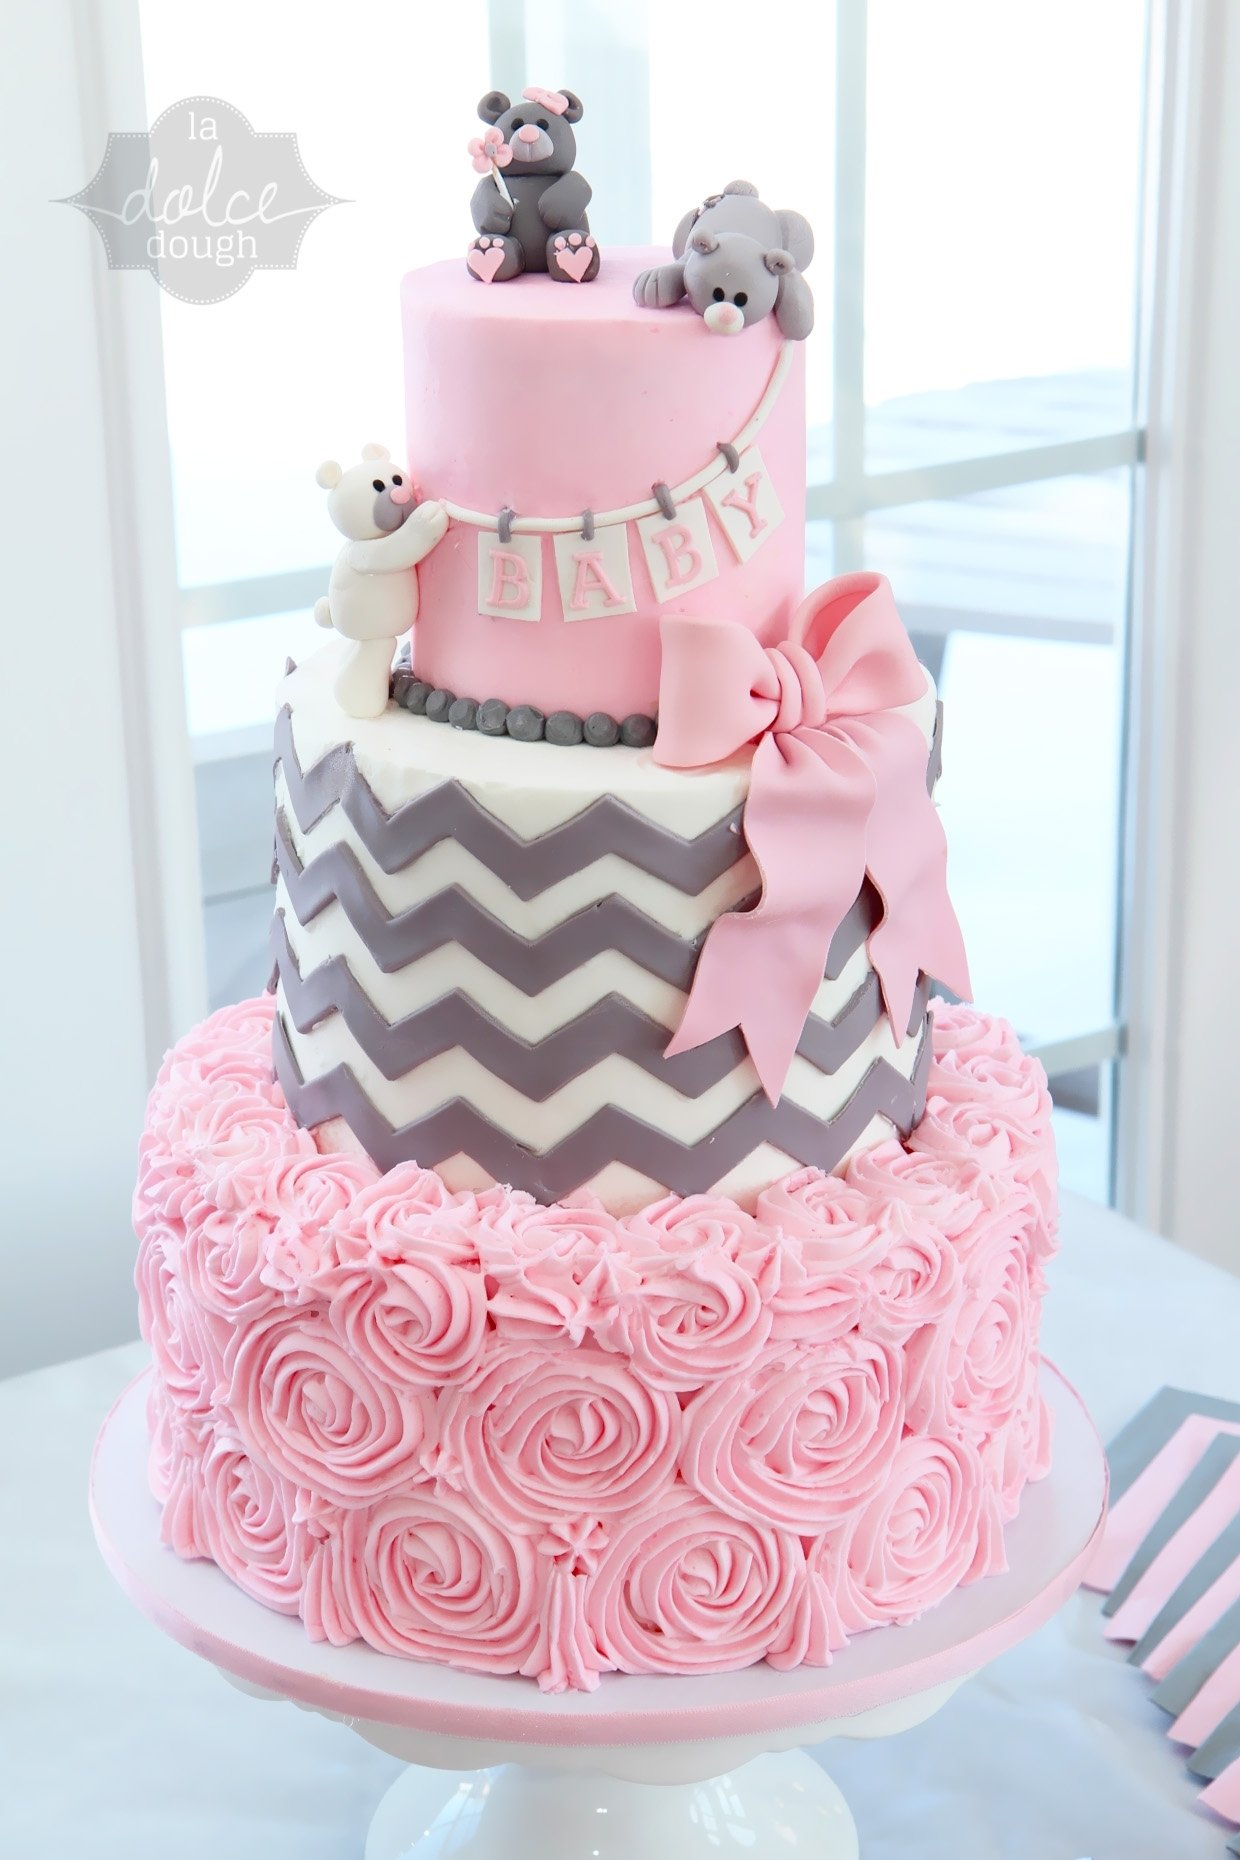 10 Beautiful Girl Baby Shower Cake Ideas gorgeous baby shower cakes stay at home mum 6